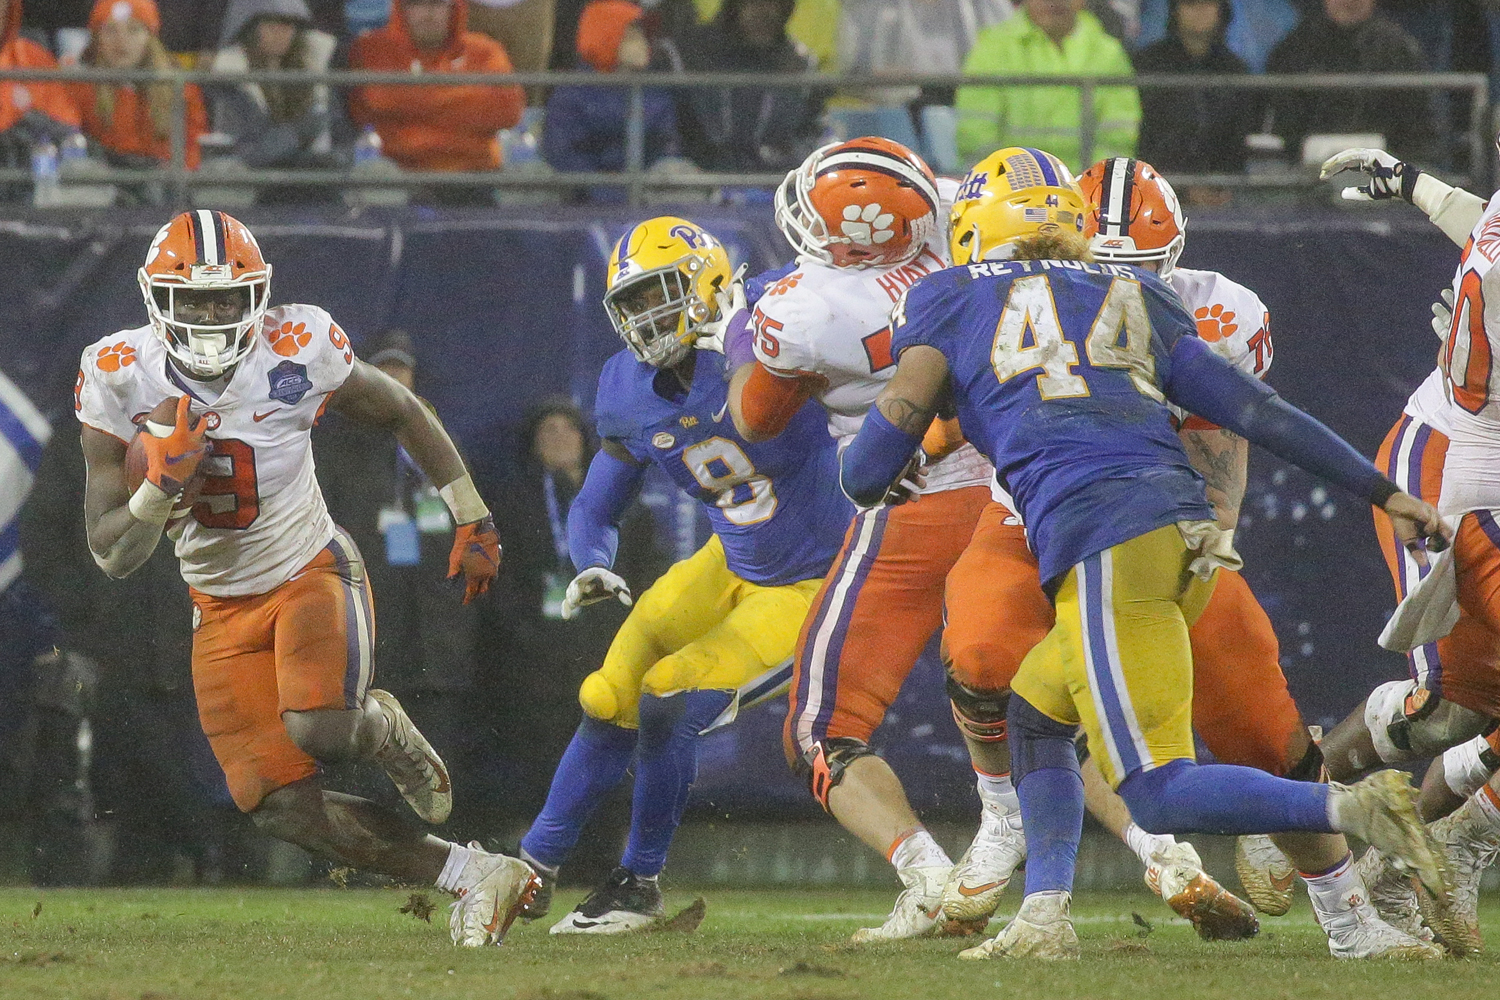 Clemson sophomore running back Travis Etienne (9) is a major contributor to the Tigers rushing offense.